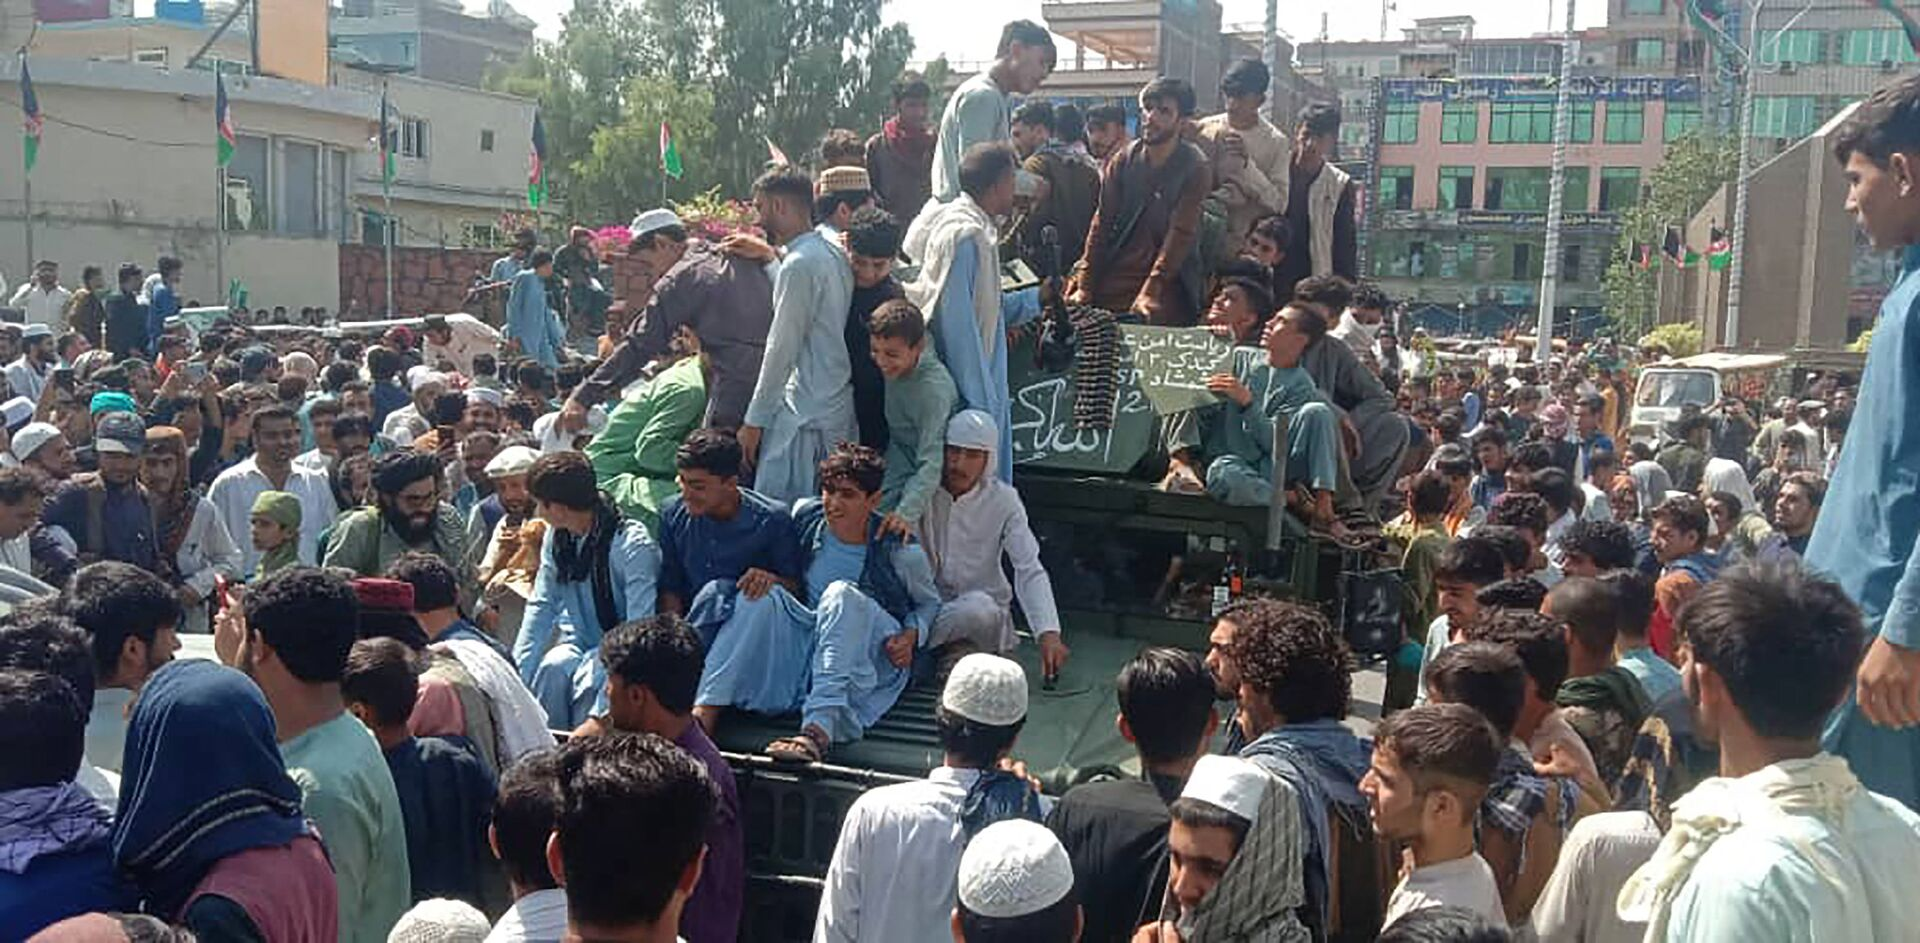 Taliban fighters and local people sit on an Afghan National Army (ANA) Humvee vehicle on a street in Jalalabad province on August 15, 2021.  - Sputnik International, 1920, 07.09.2021